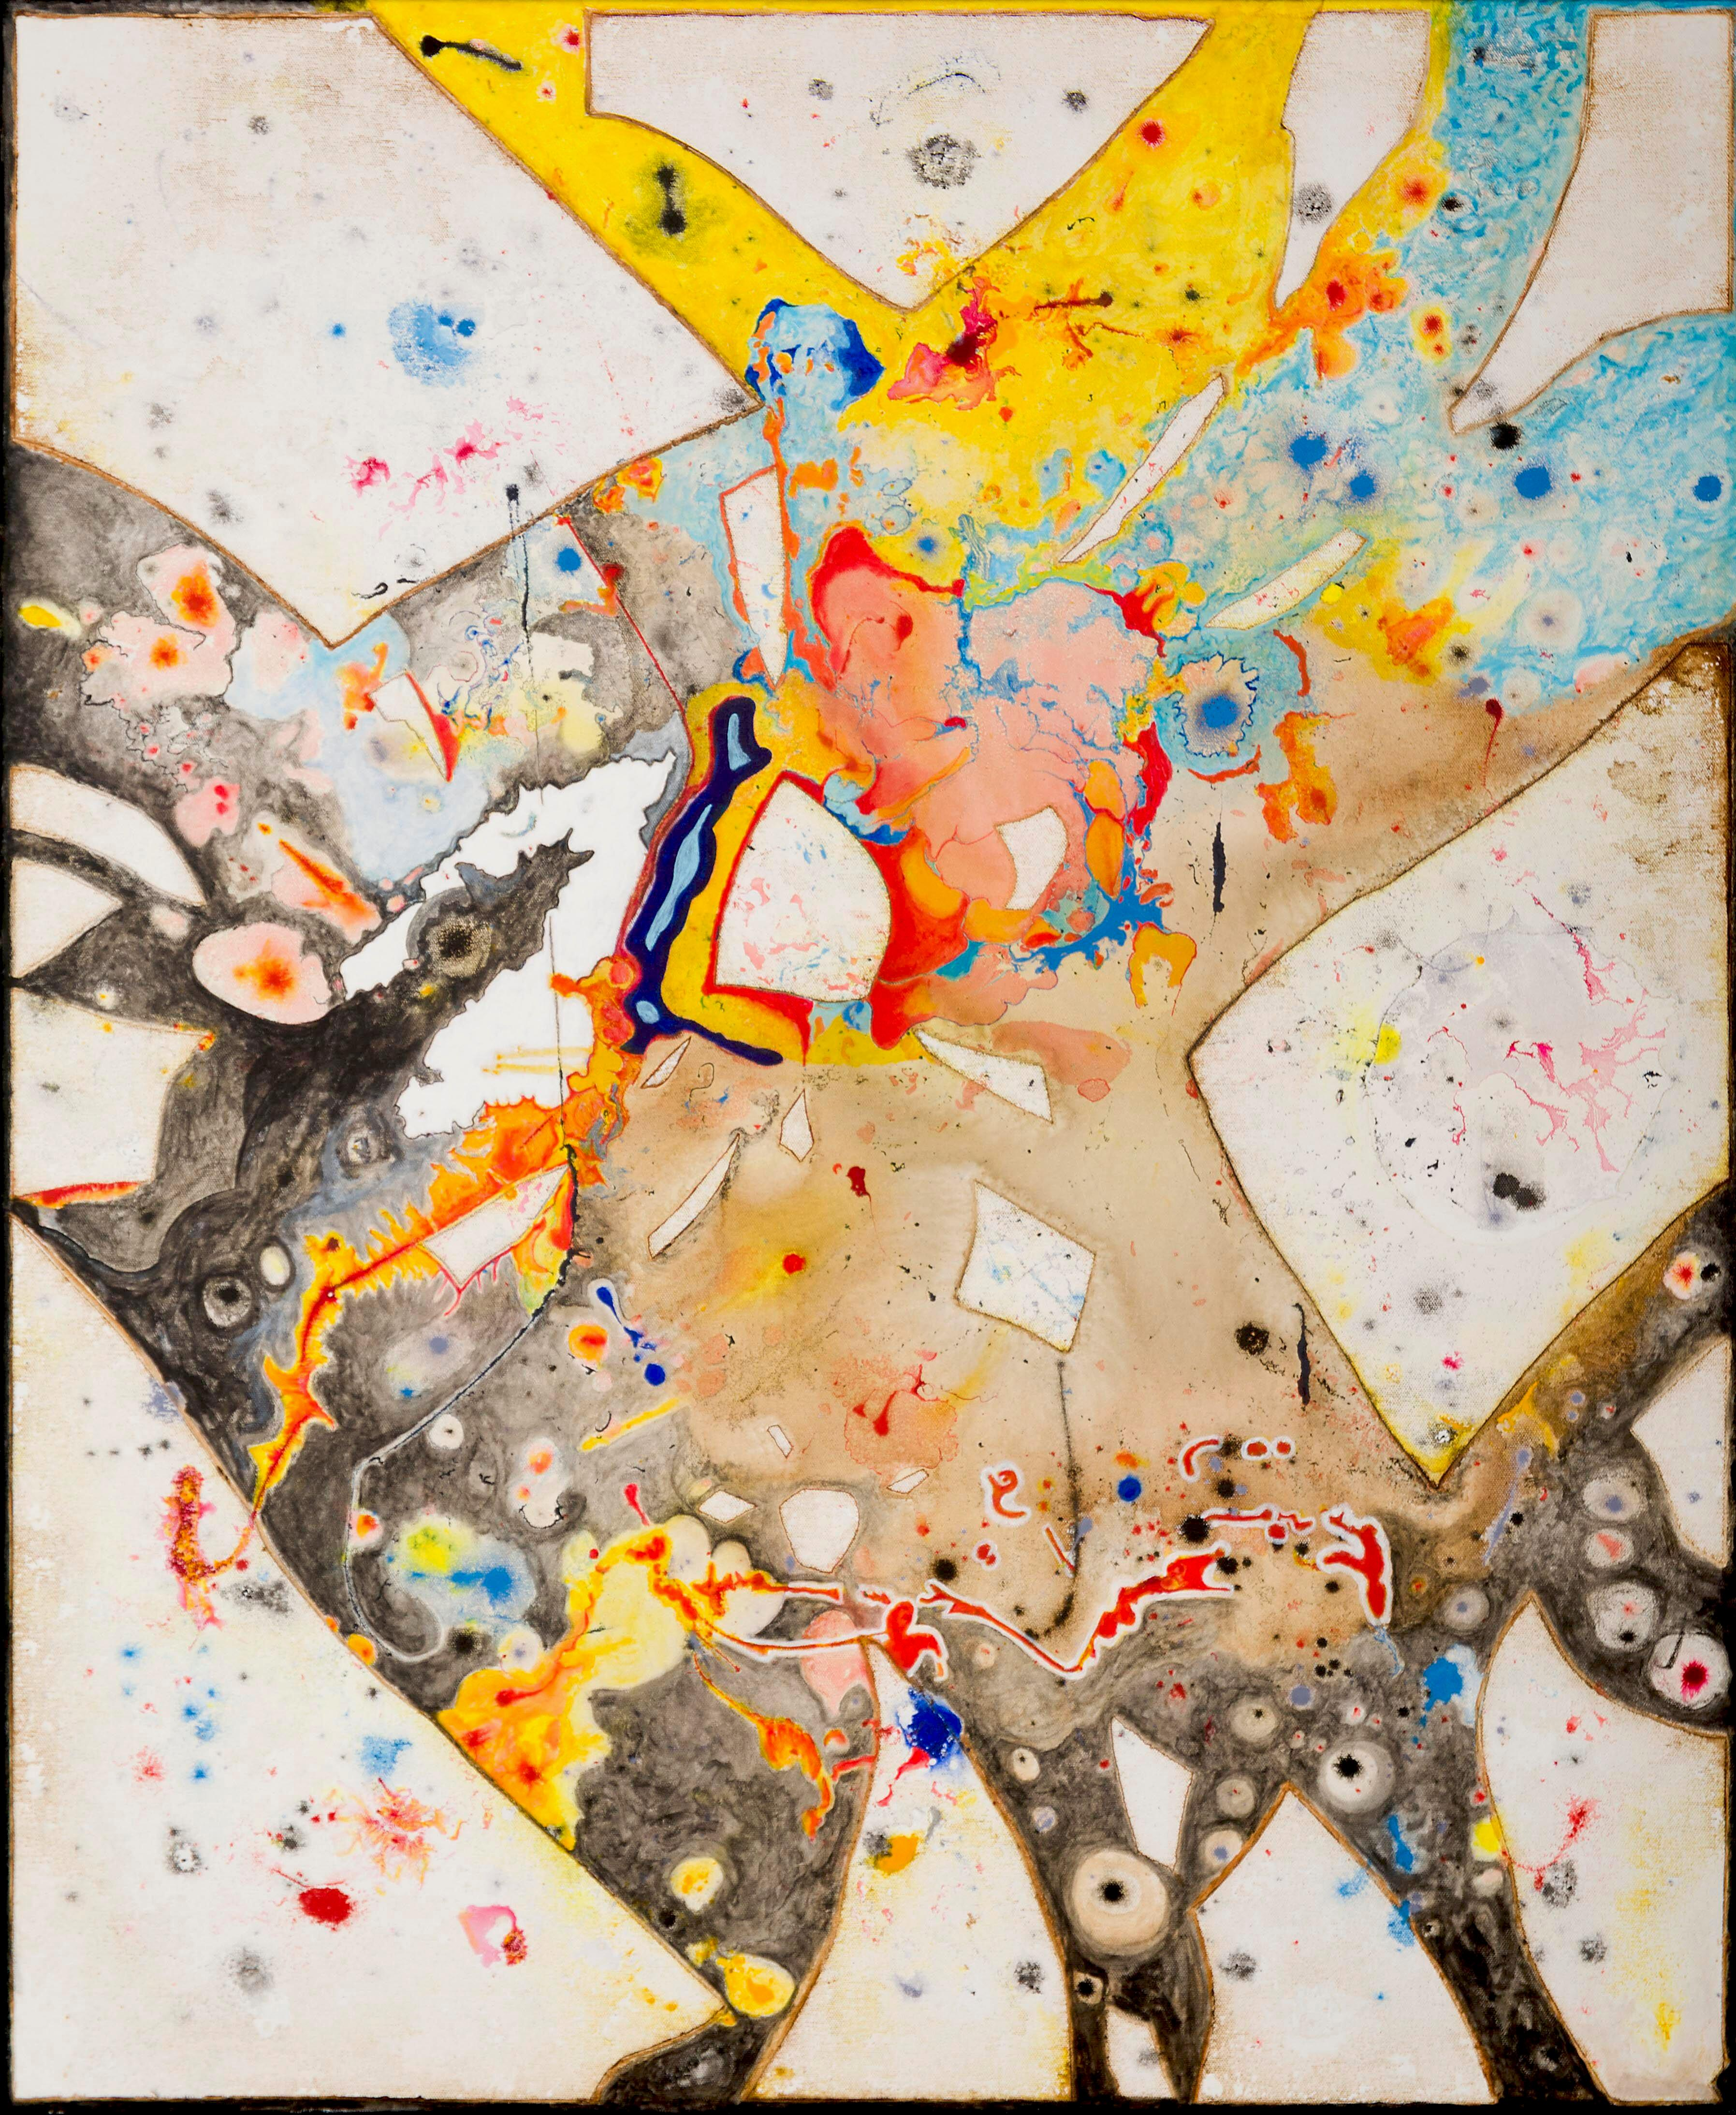 Glass  by Detlef Aderhold - Large Energetic Contemporary Abstract Painting